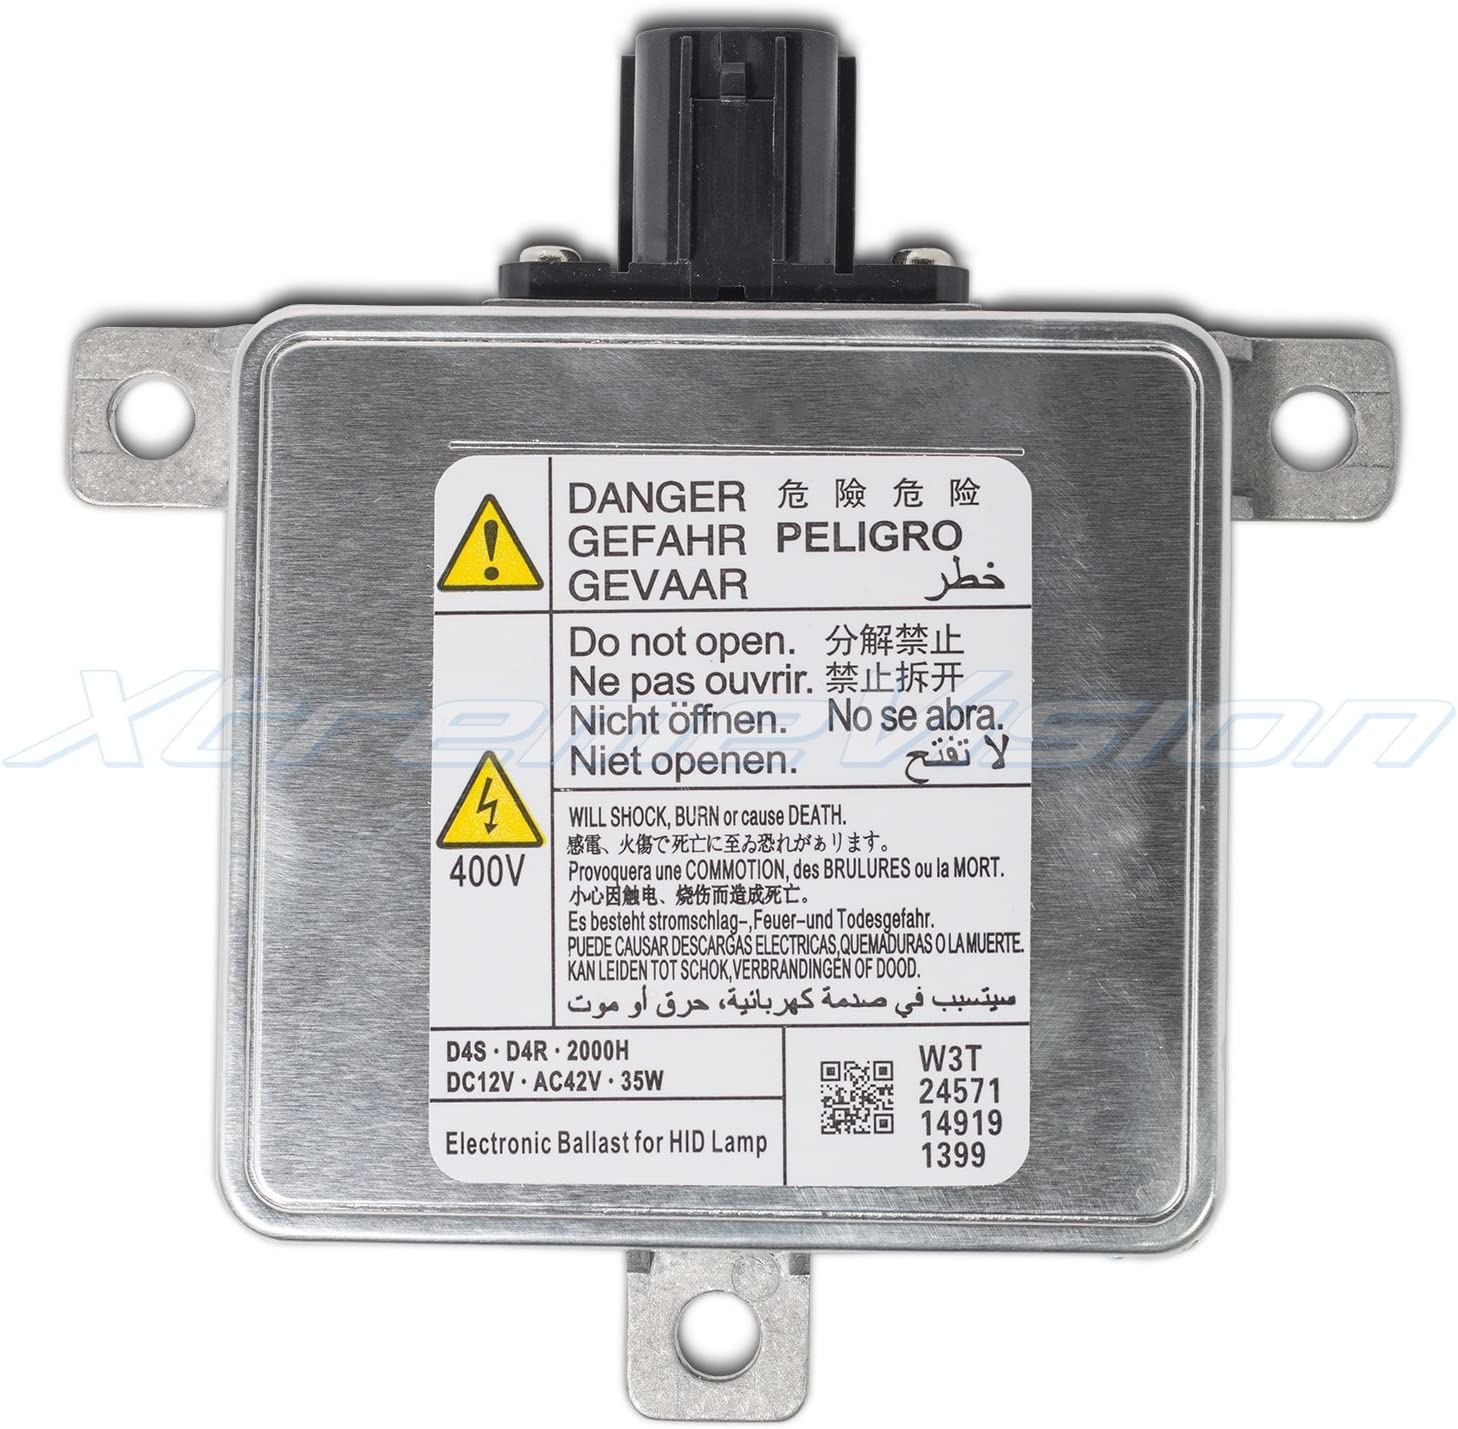 XtremeVision OEM Replacement Ballast Compatible with AL 1307329293 Xenon HID Ballast Single - 1 PCS - 2 Year Warranty D1S//D1R